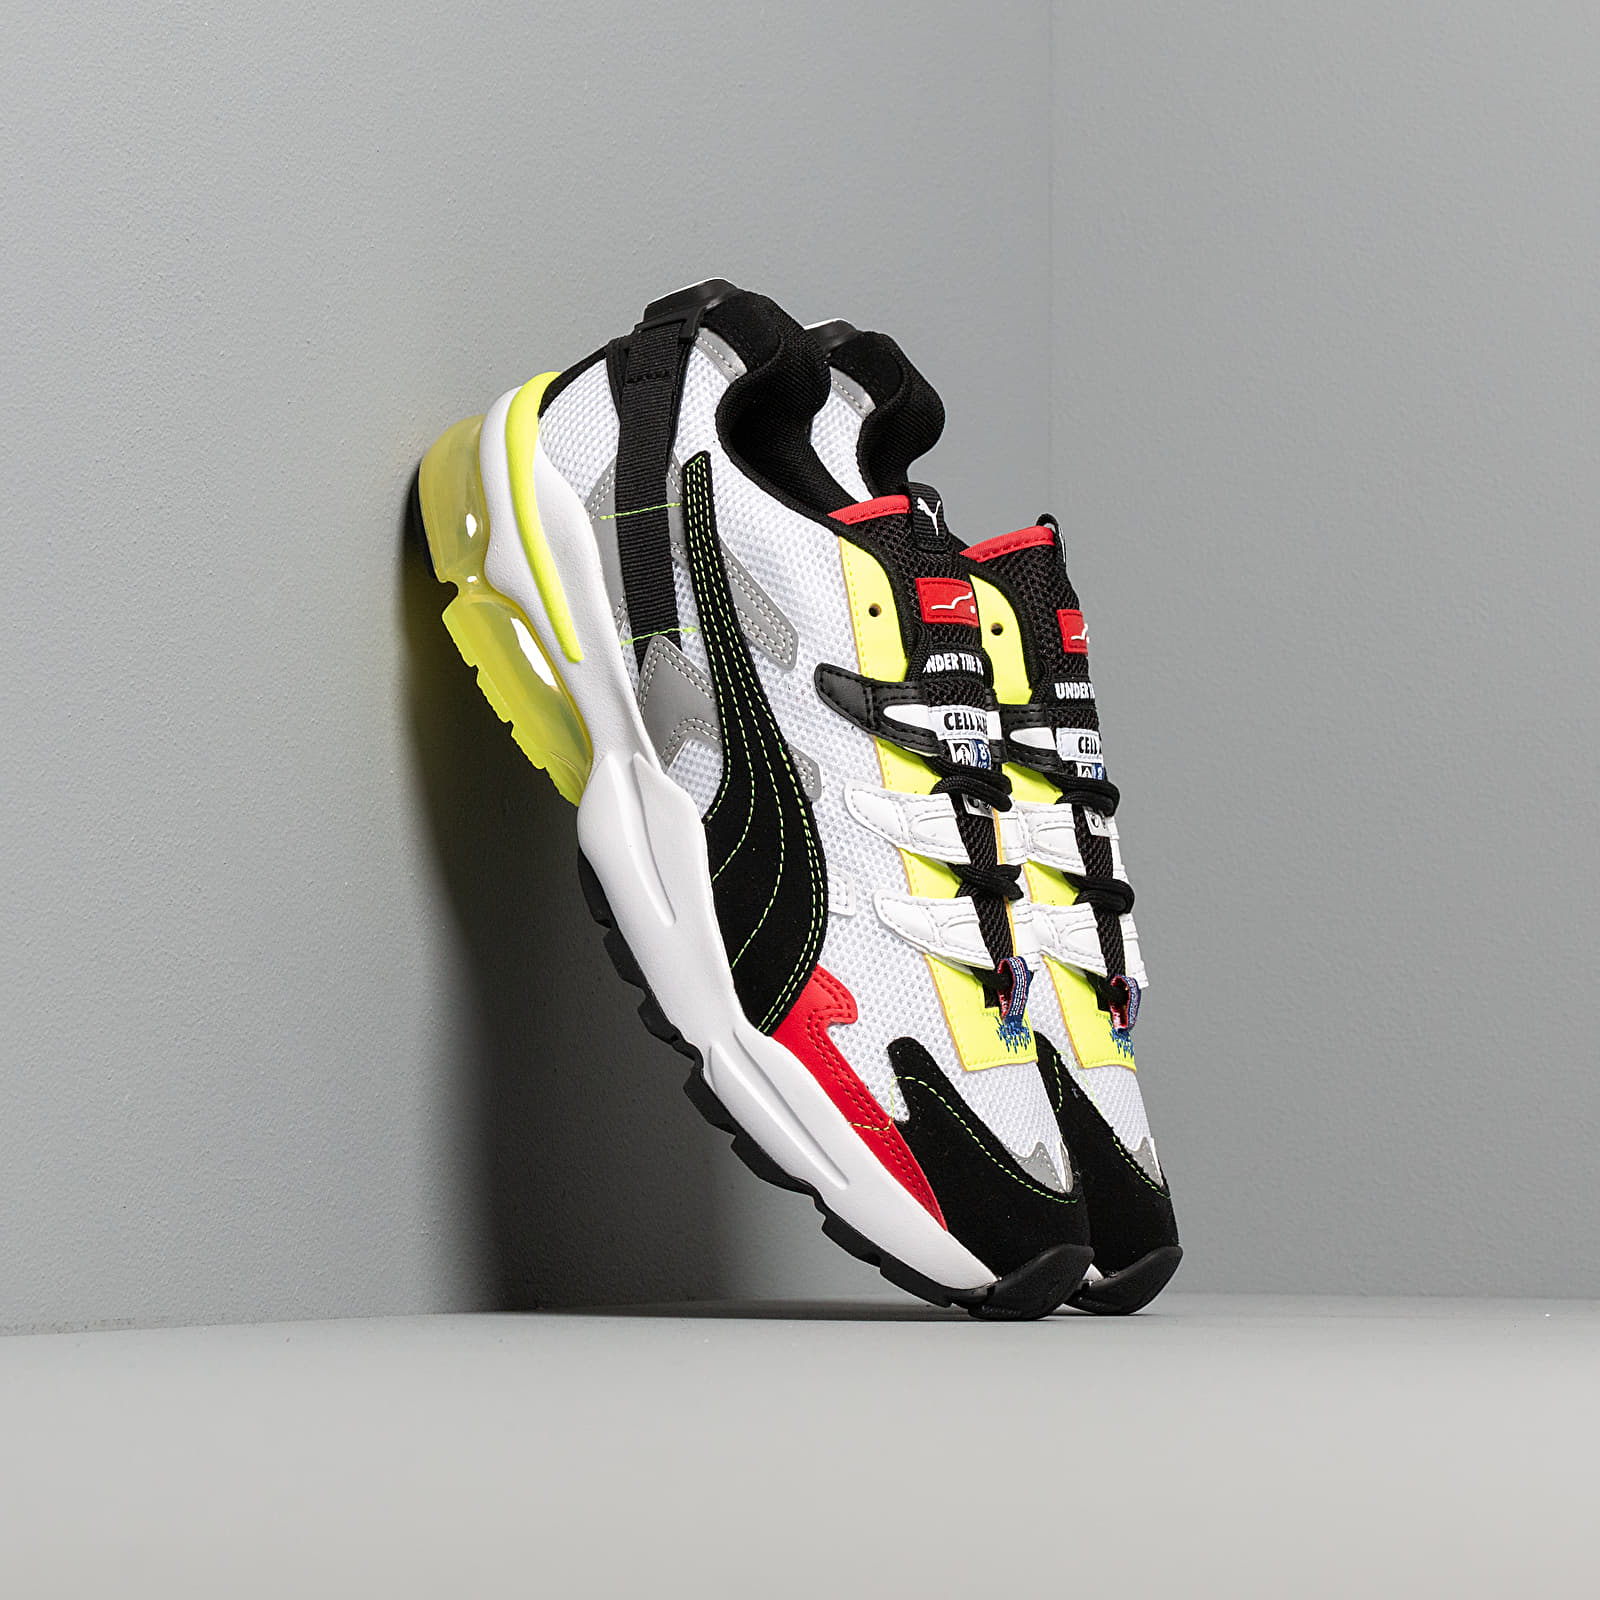 Puma x Ader Error Cell Alien Puma White-Puma Black | Footshop